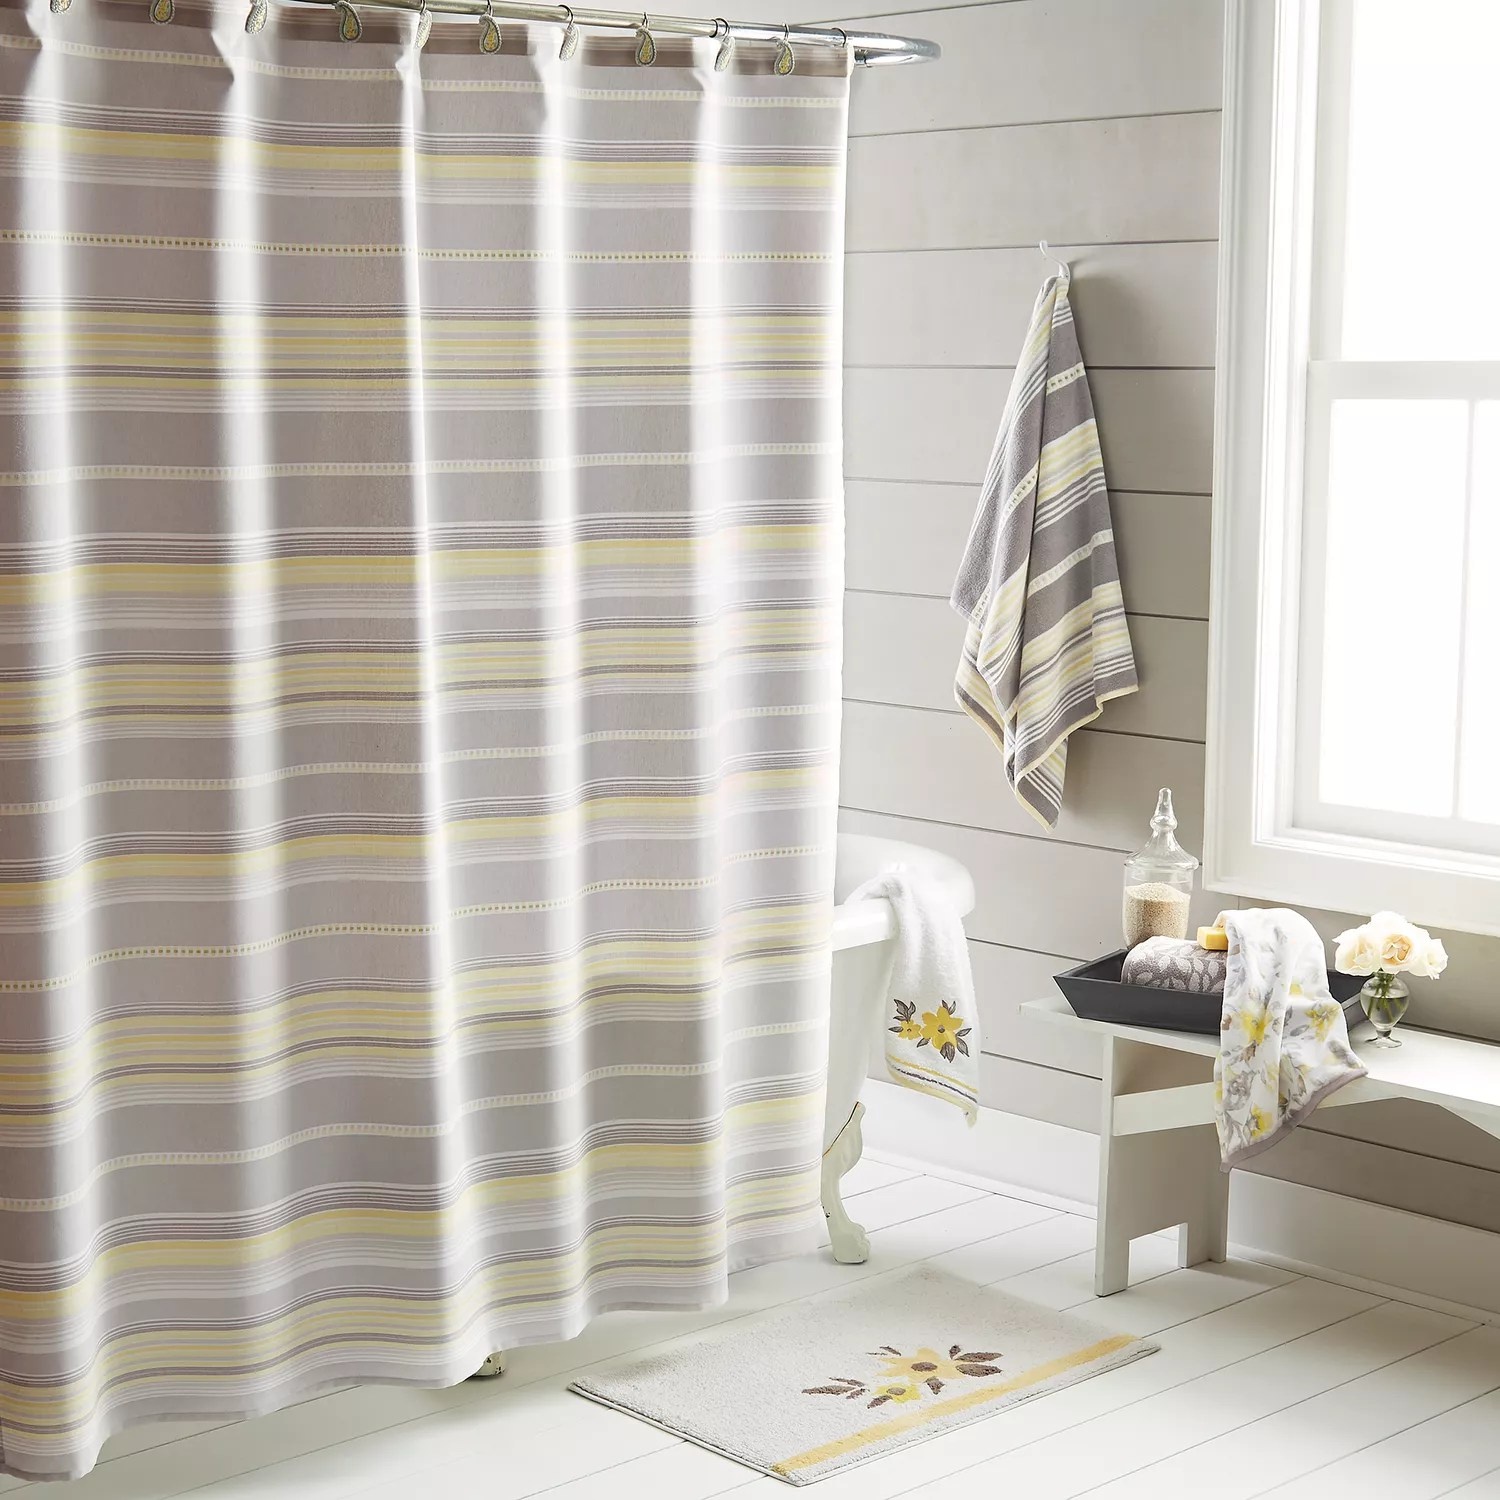 Kohls Com Shower Curtains One Home Taylor Stripe Shower Curtain Collection